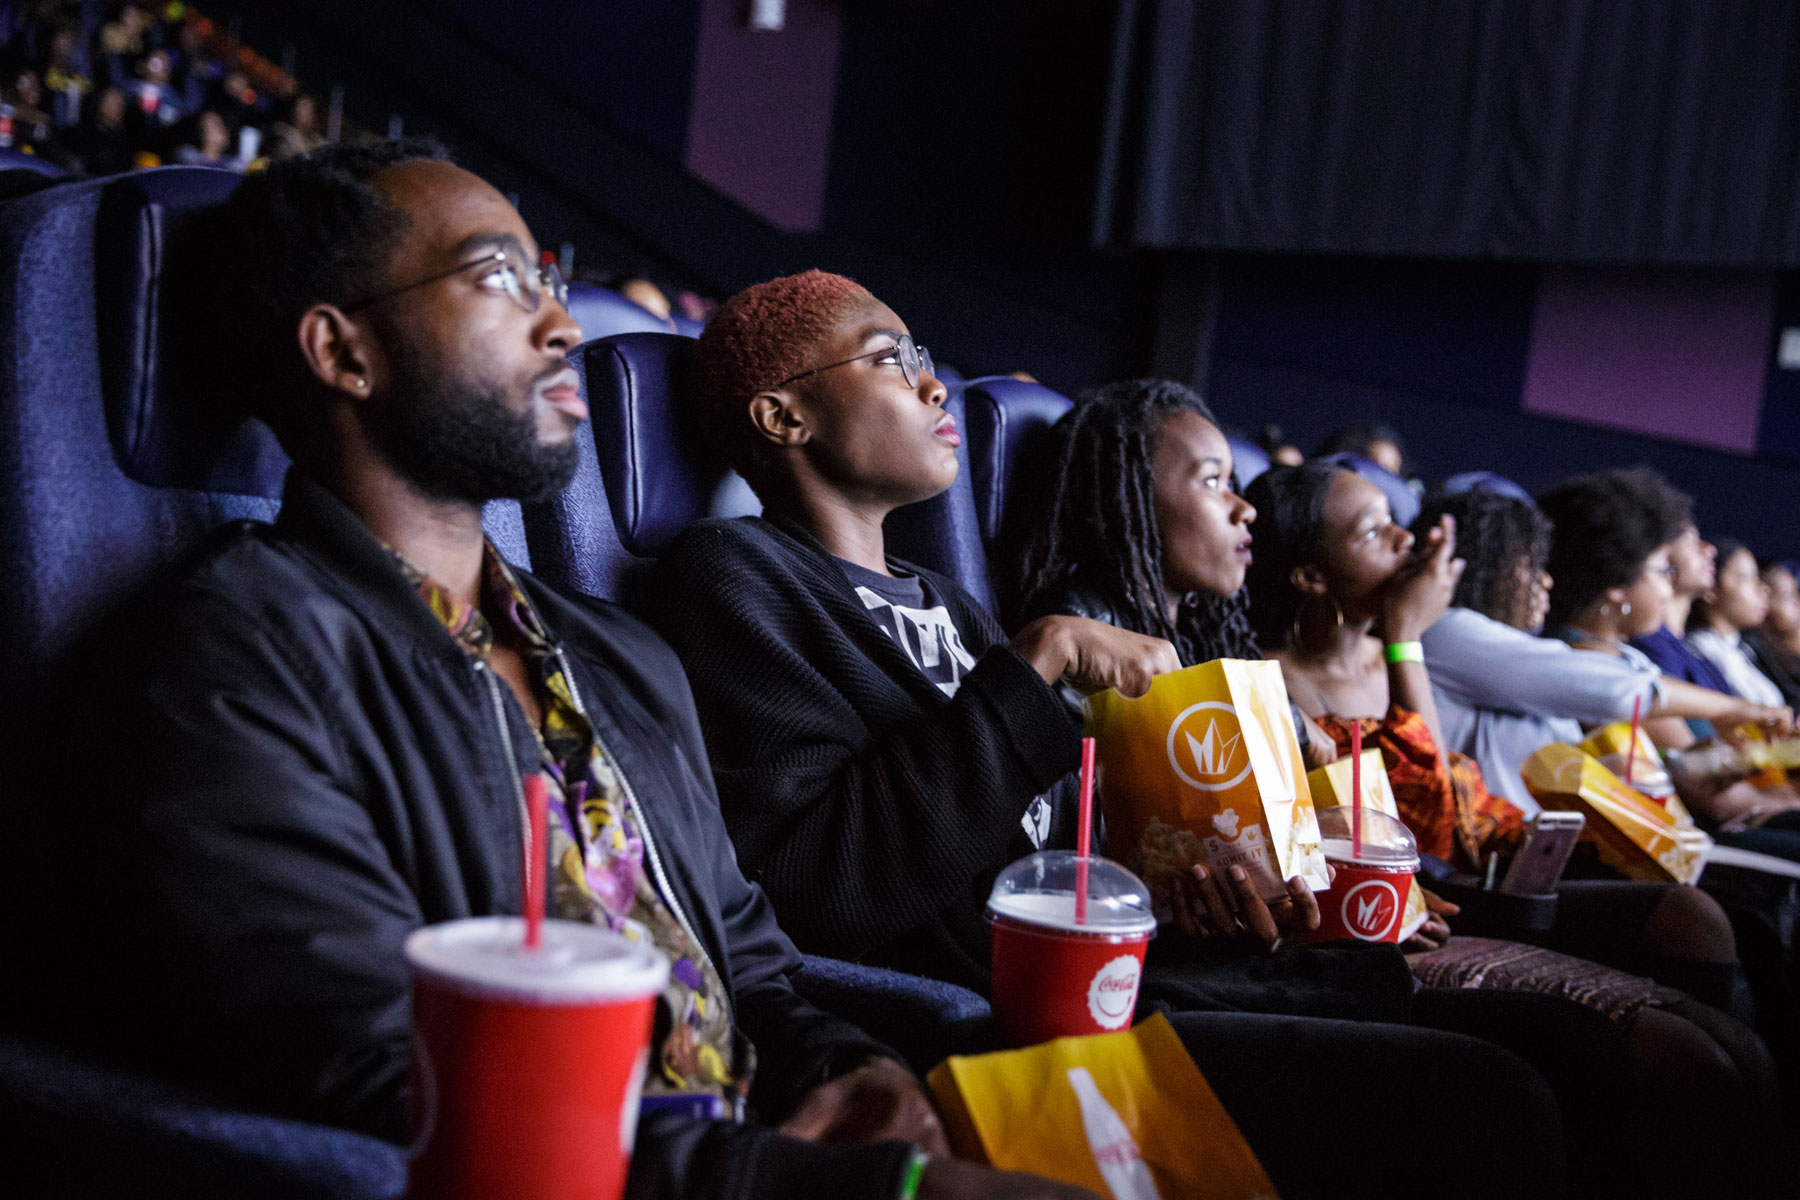 The 15 most significant social impact films of 2018 - USC News